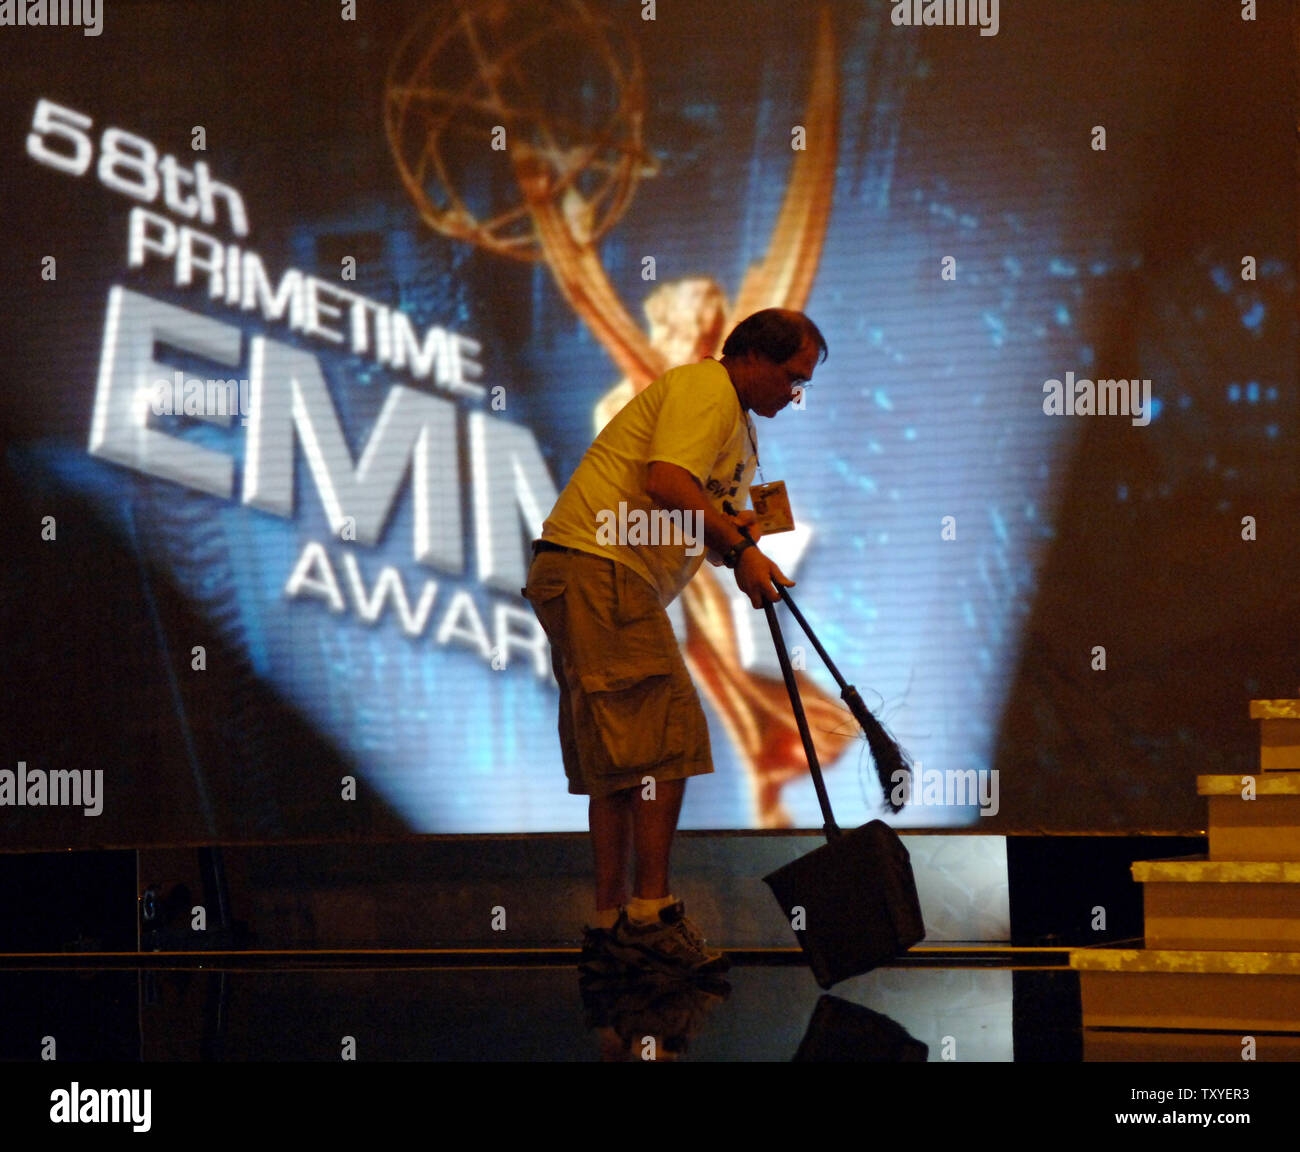 A worker makes final stage preparations at the Shrine Auditorium for the 58th annual Primetime Emmy Awards in Los Angeles on August 25, 2006. The award show airs Sunday, Aug. 27. (UPI Photo/Jim Ruymen) - Stock Image